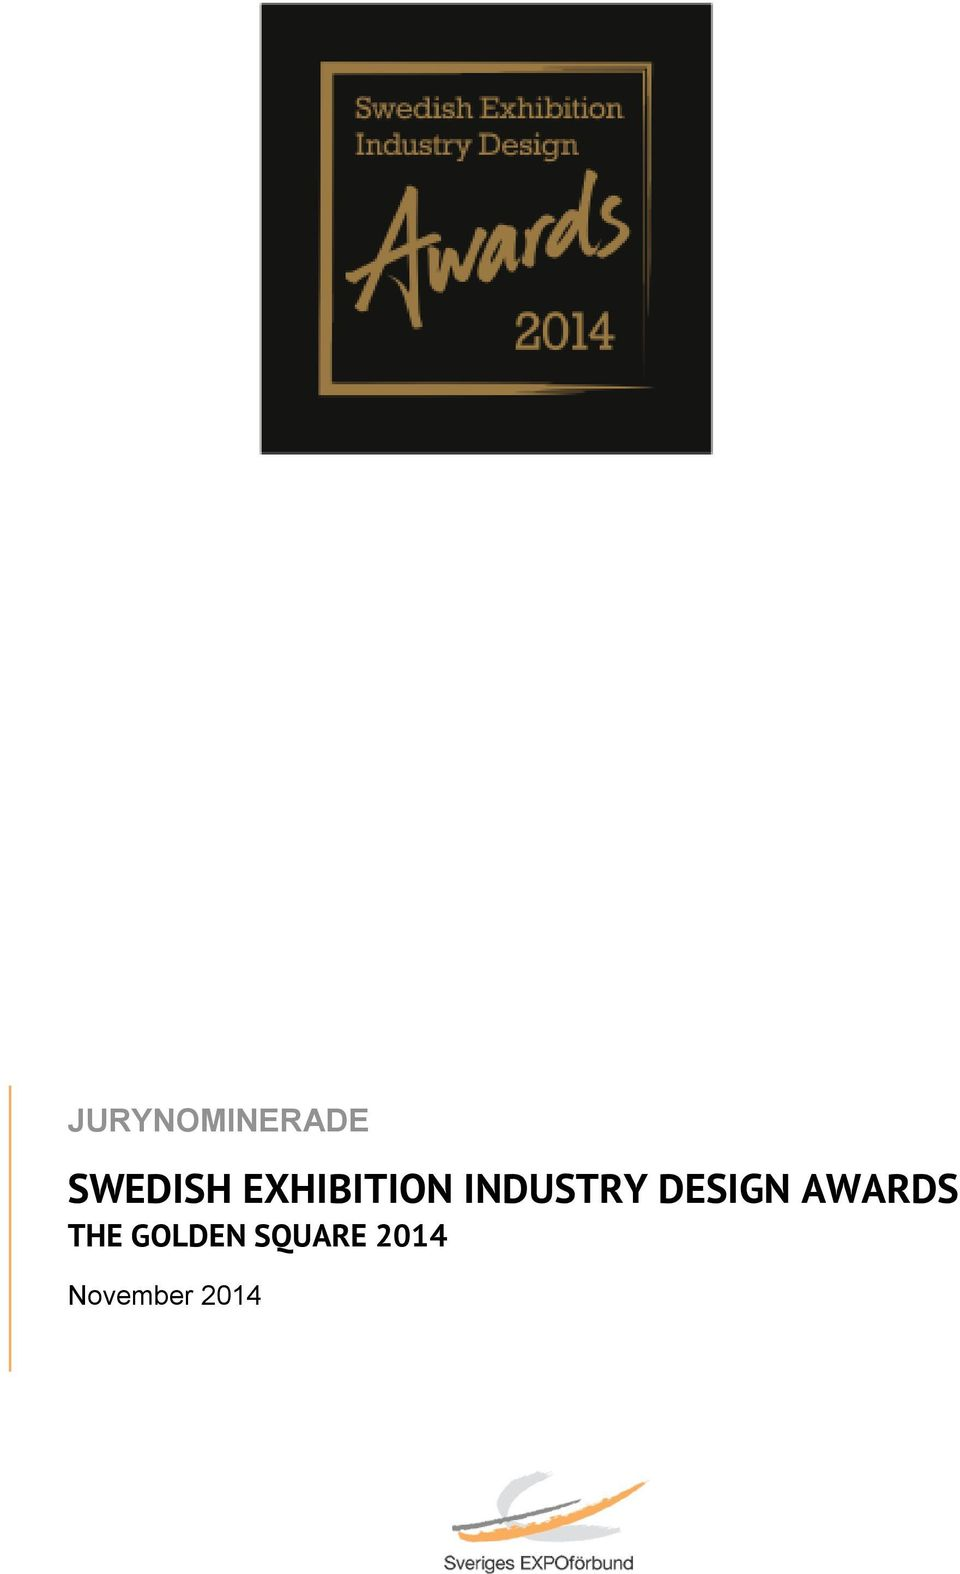 DESIGN AWARDS THE